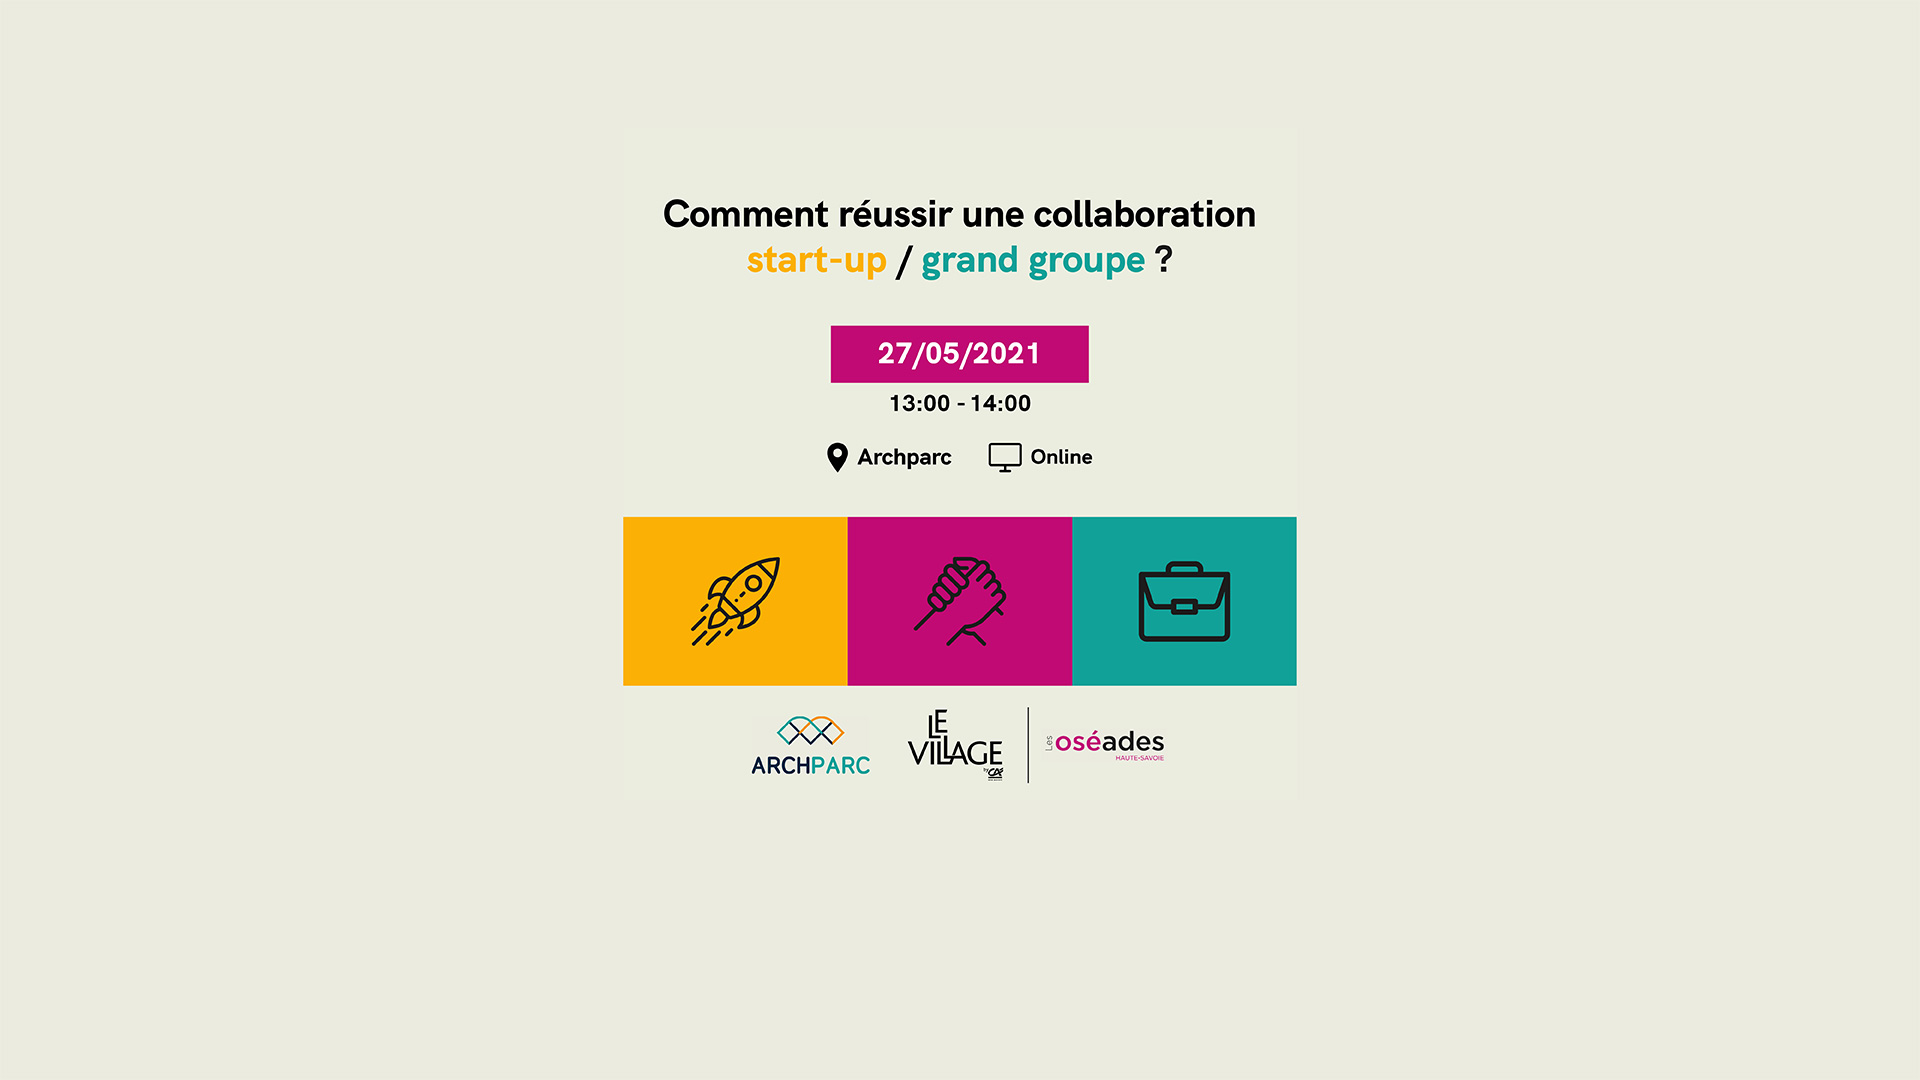 Oséades :  Comment réussir une collaboration start-up / grand groupe ?